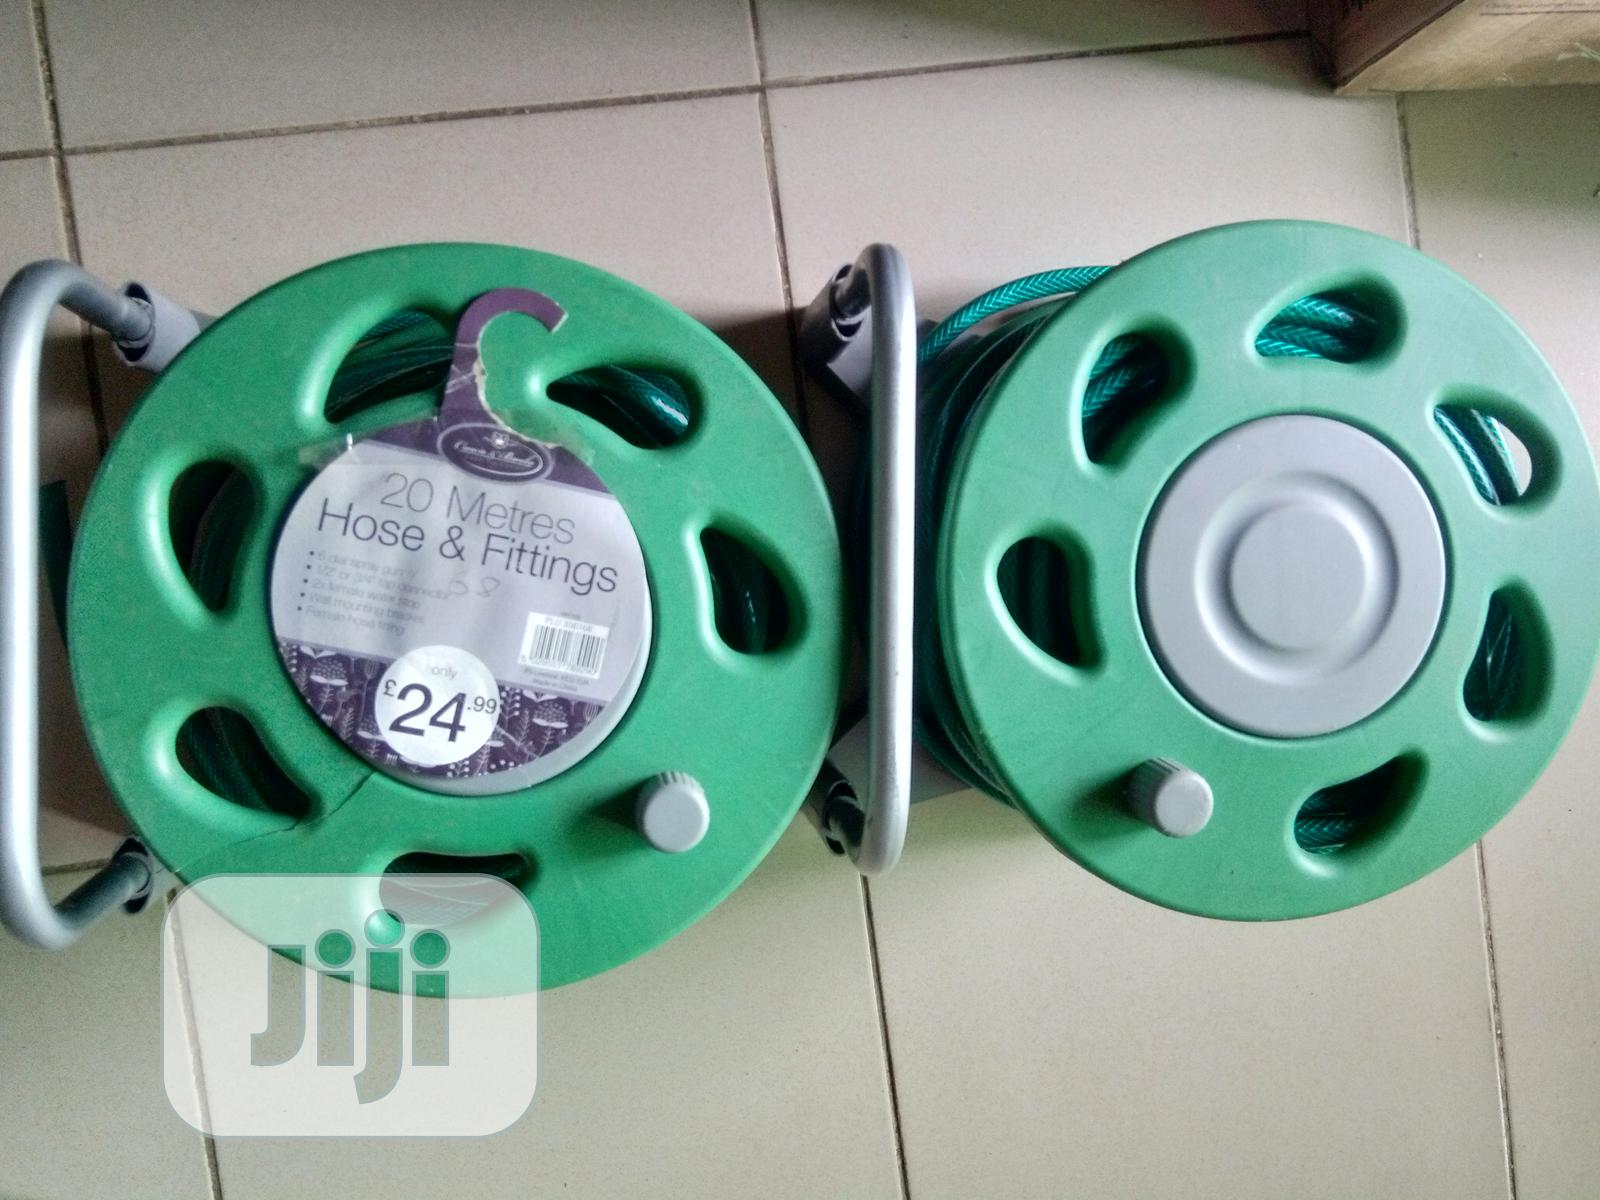 20 Meters Hose With Fittings